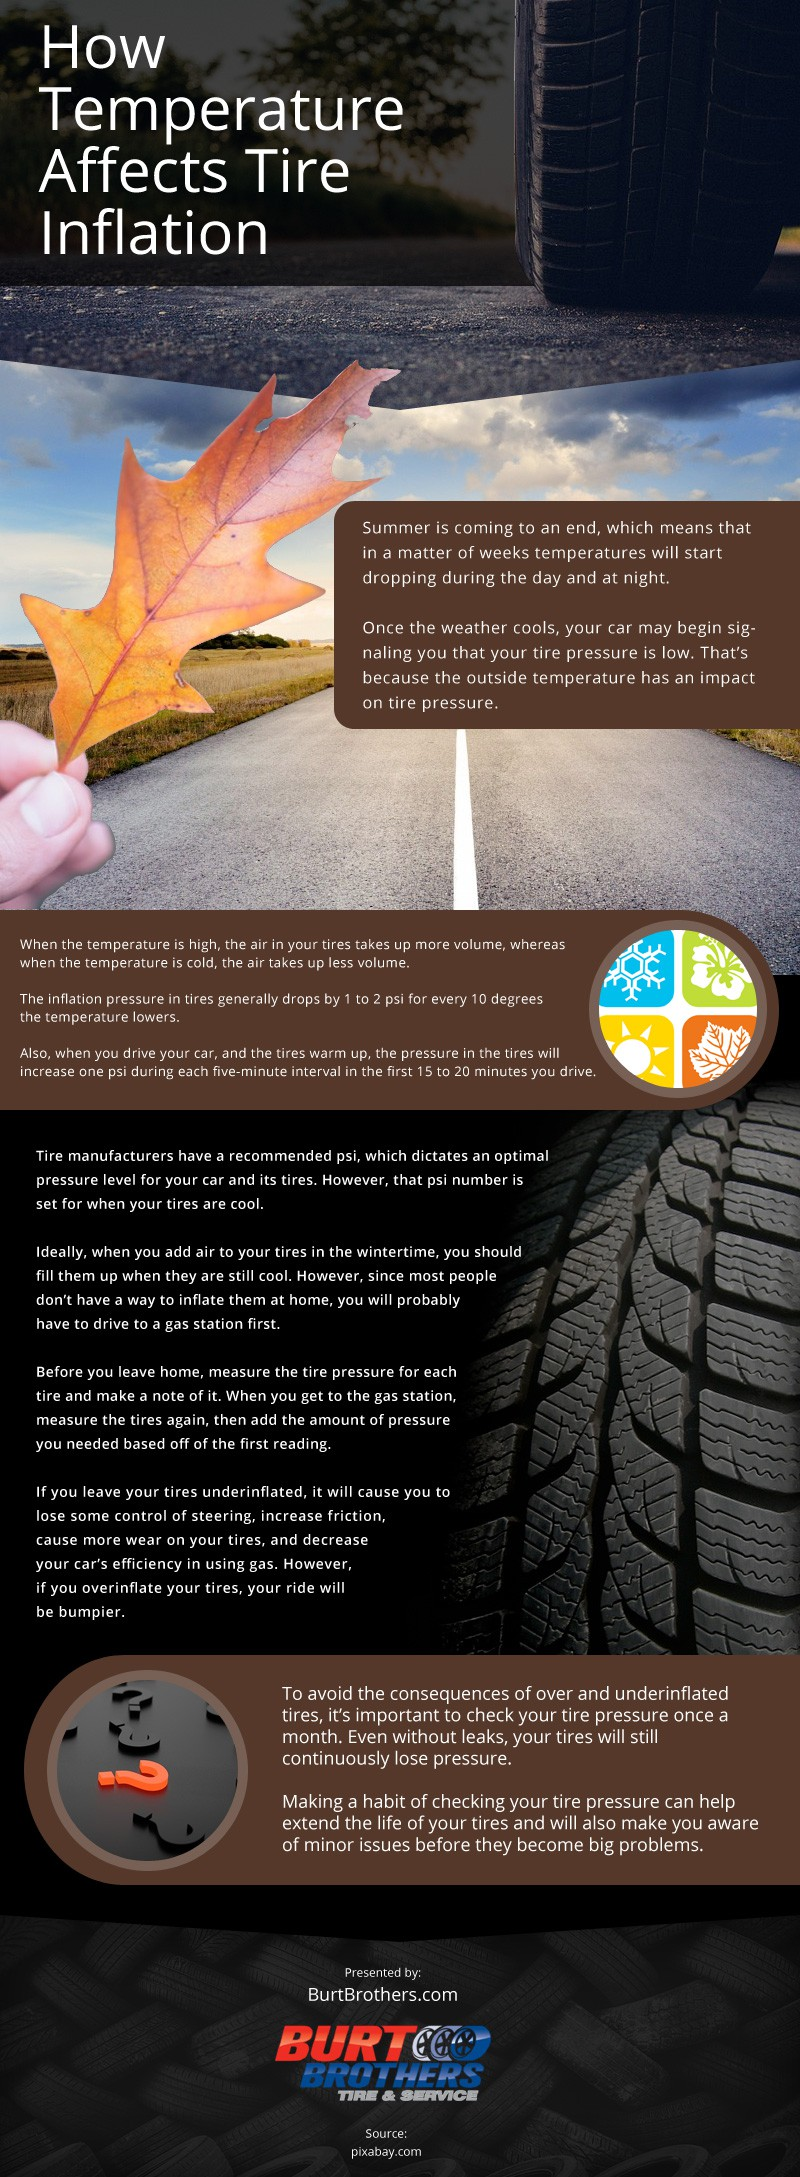 How Temperature Affects Tire Inflation [infographic]